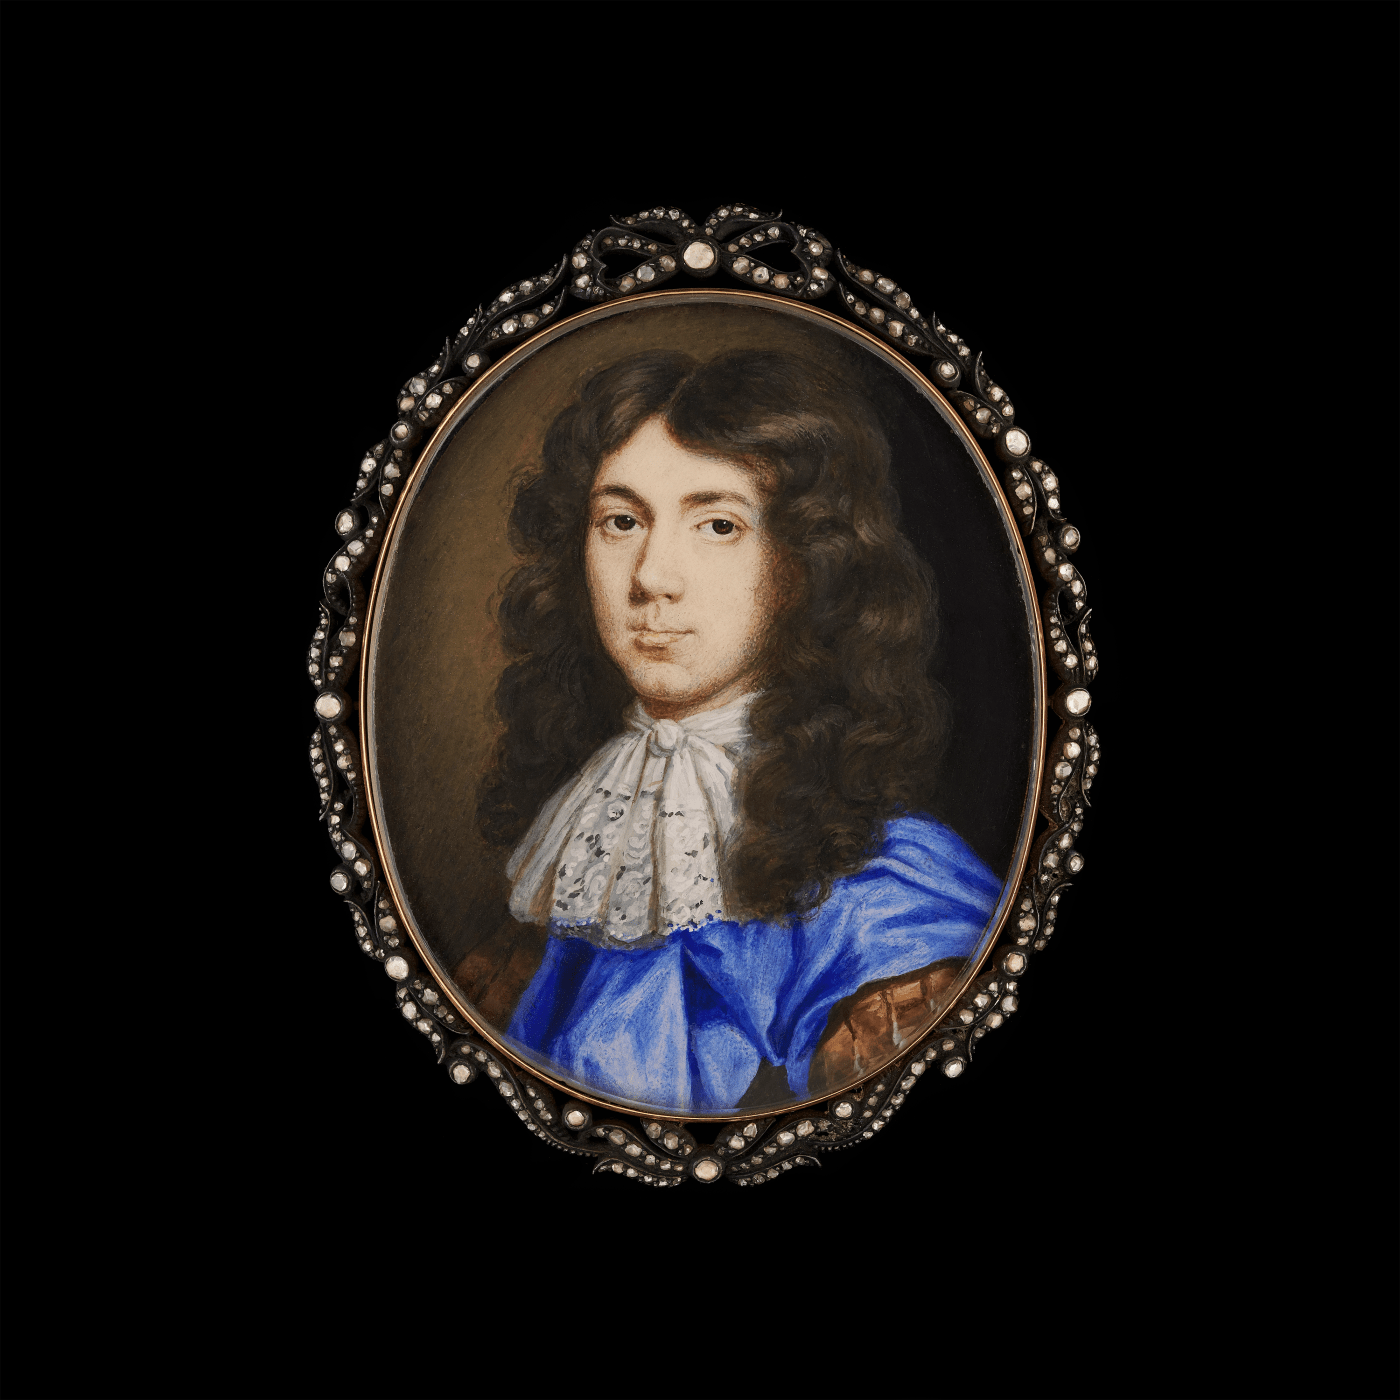 portrait miniature of a gentleman in a blue and brown dublet, and white neckerchief, by richard gibson court painter. other works by richard gibson are for sale in theartist page